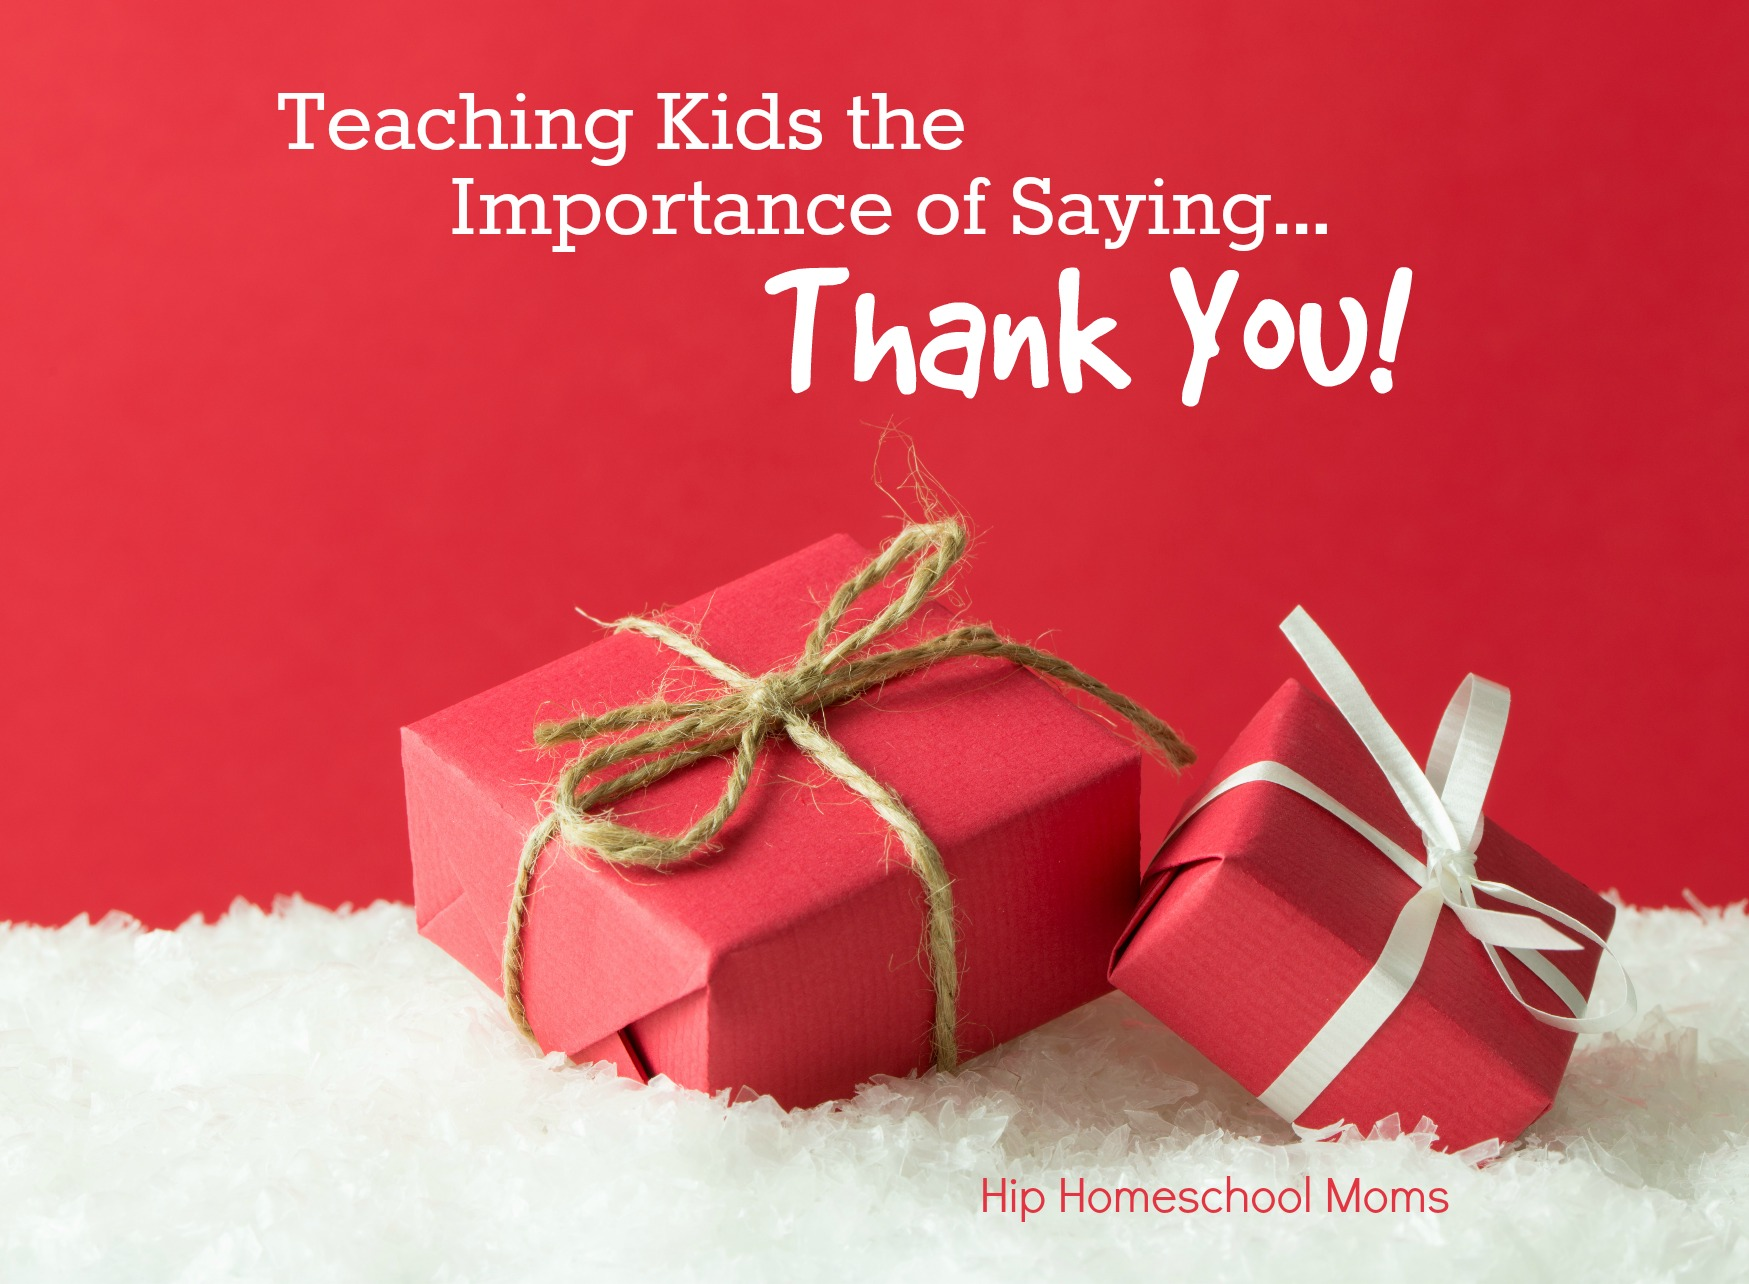 Teaching Kids the Importance of Saying Thank You